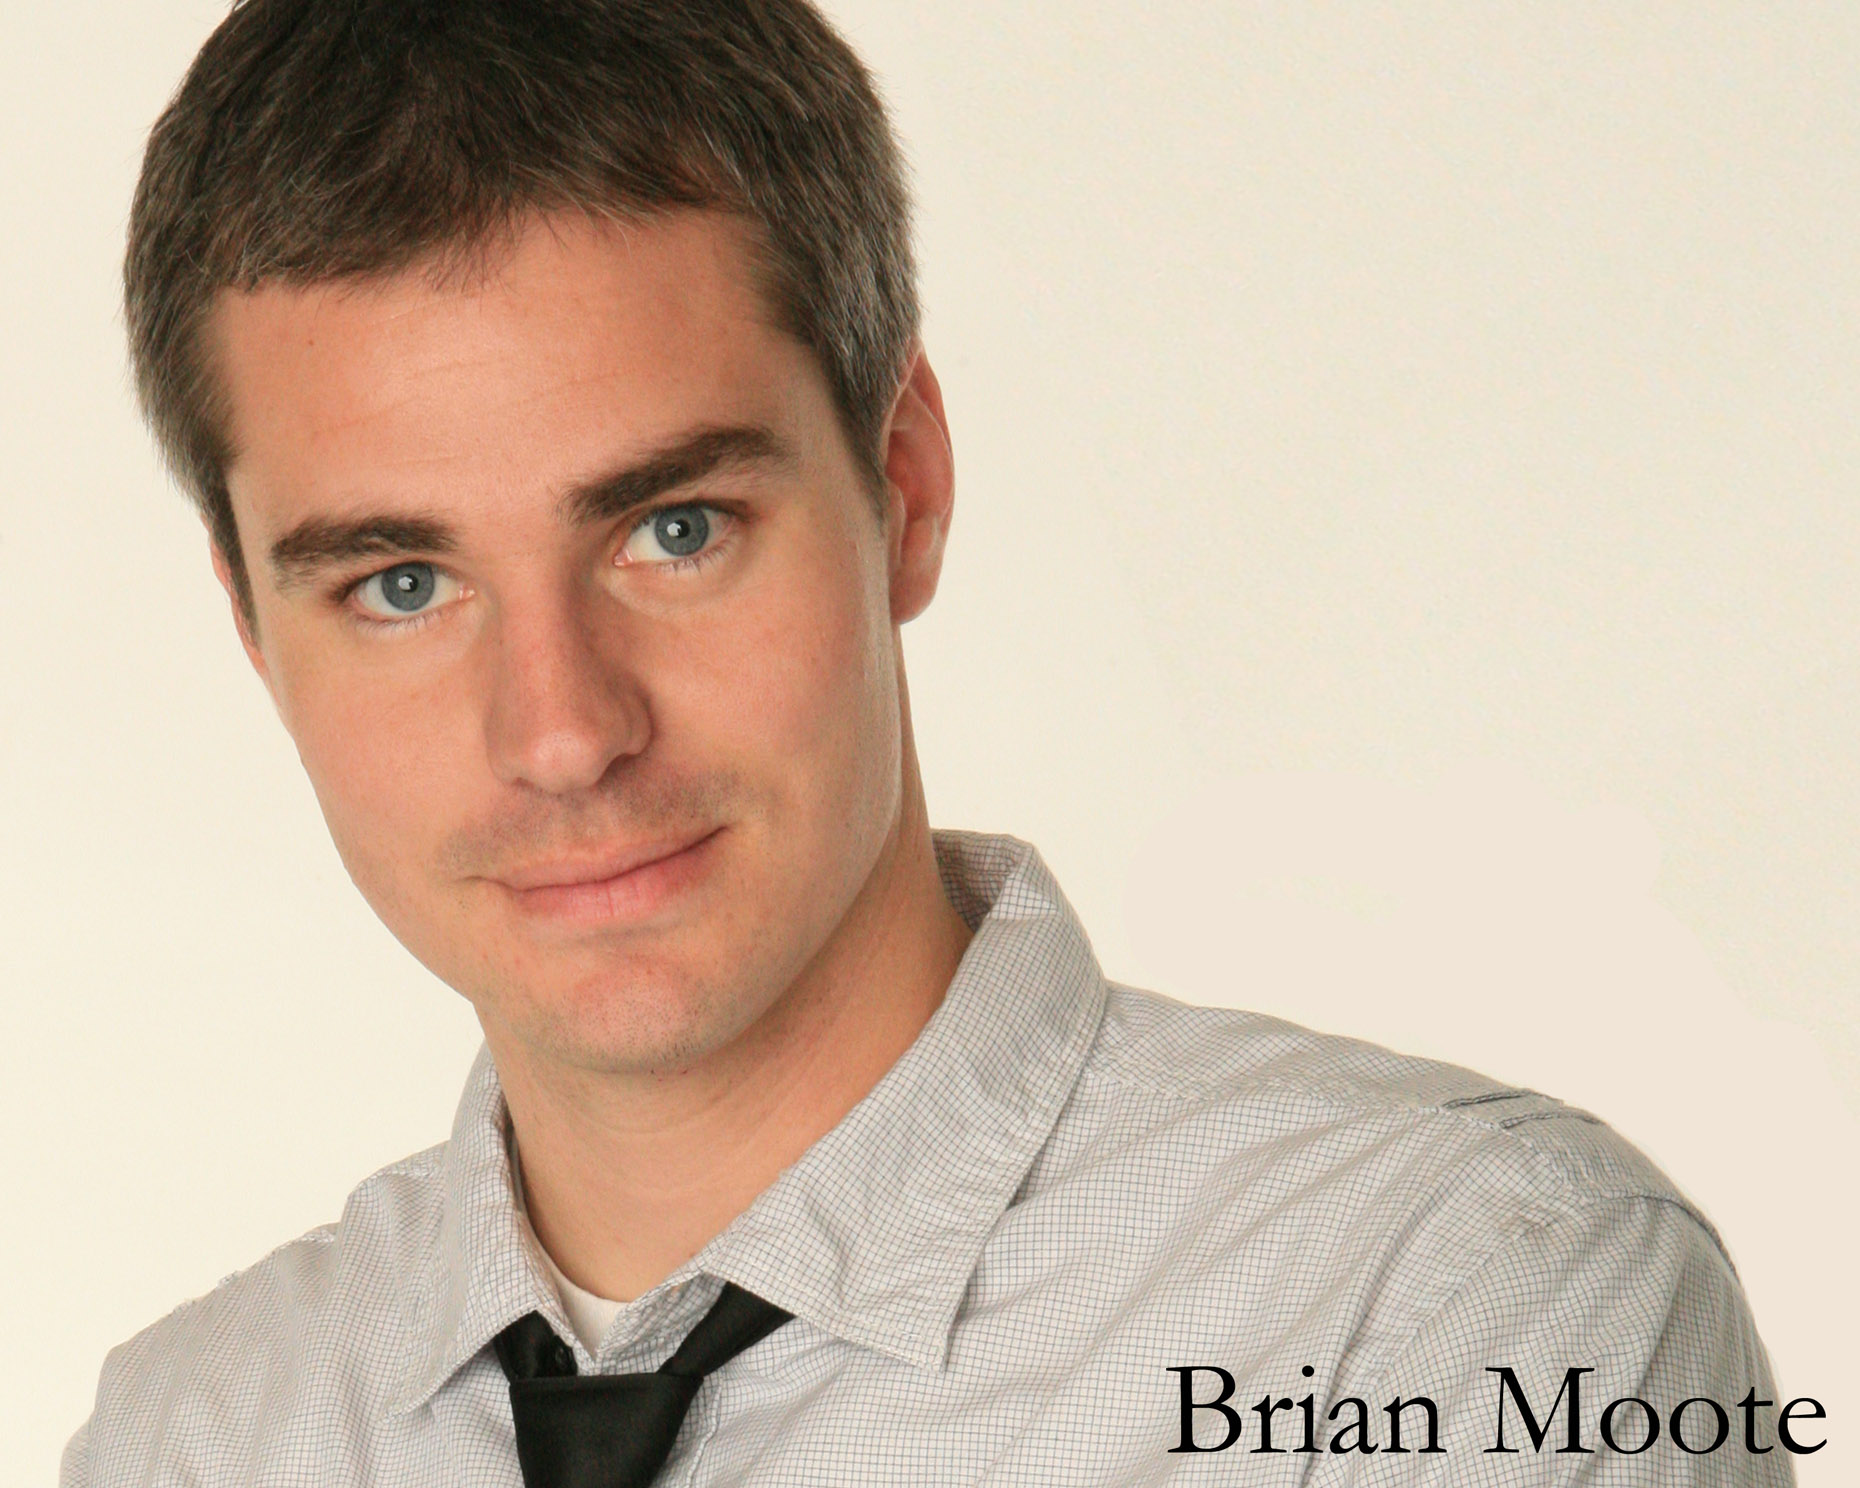 Brian Moote click to learn more about this entertainer